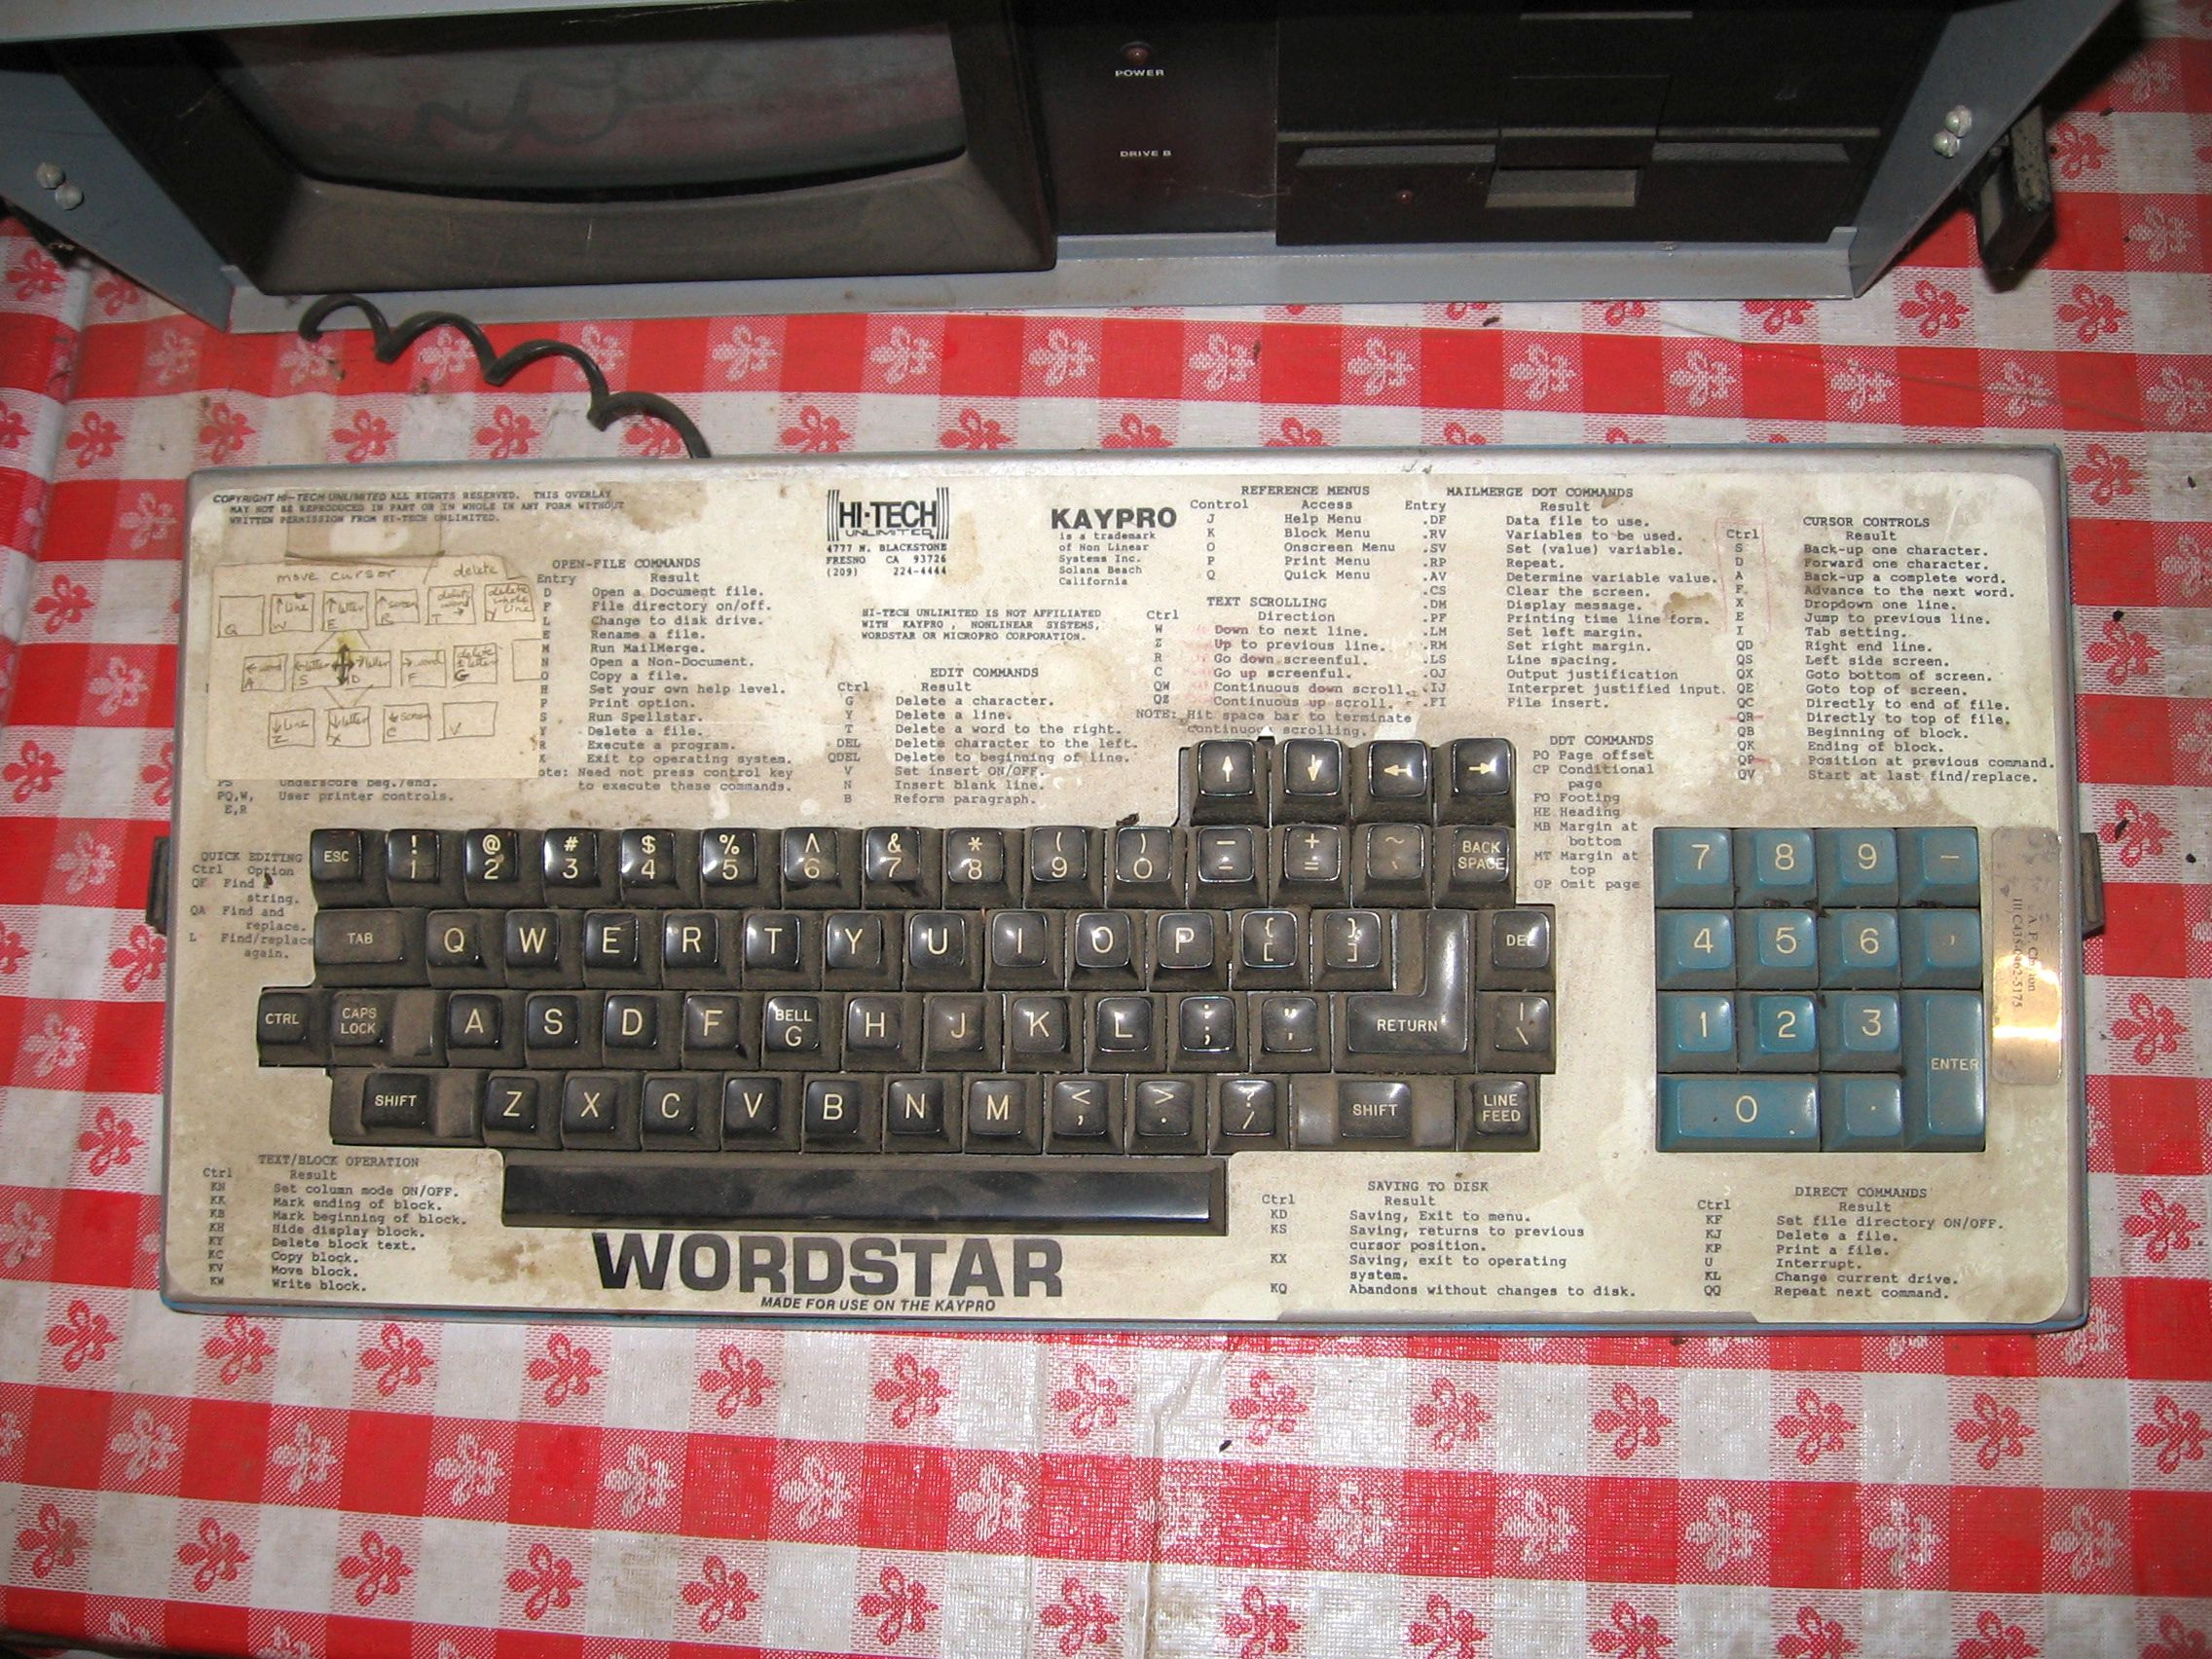 WordStar—The First Word Processor